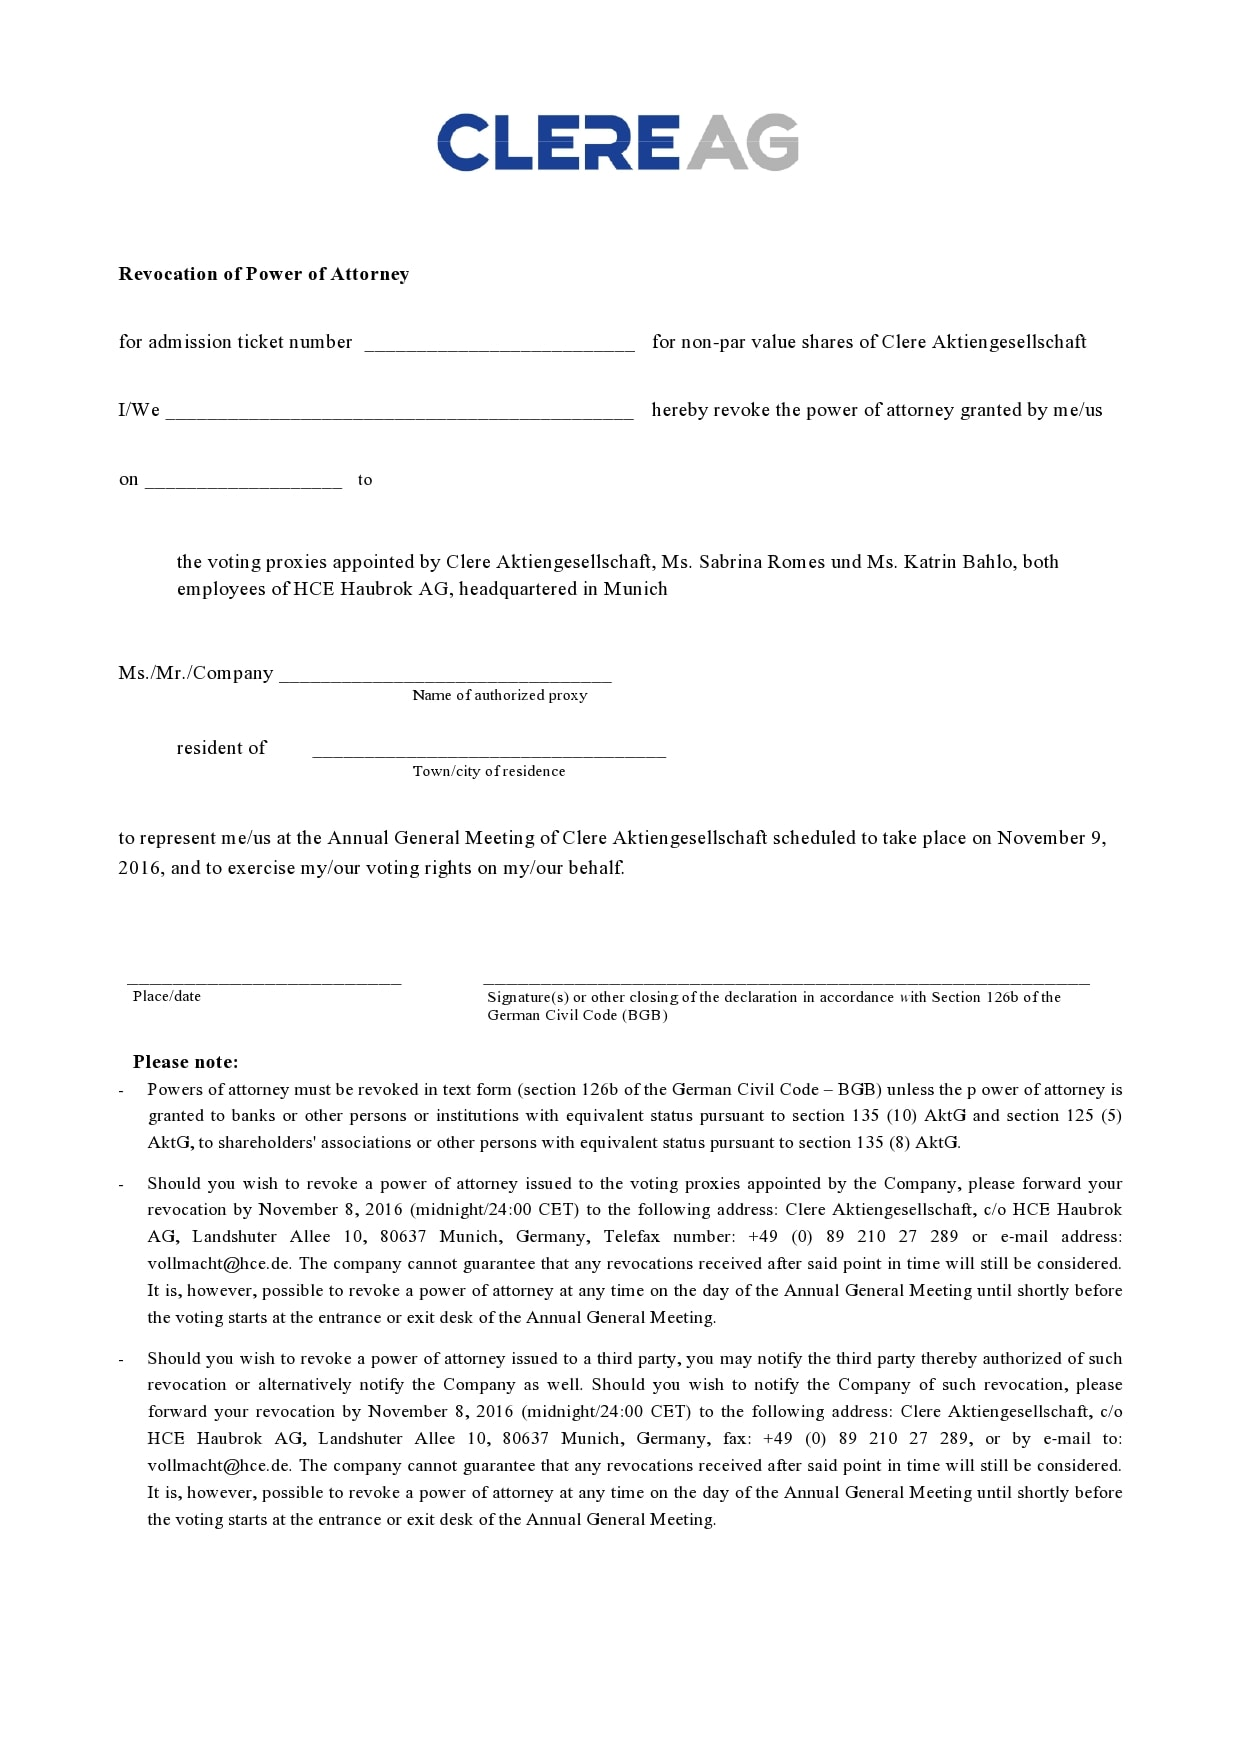 power of attorney revocation form 14